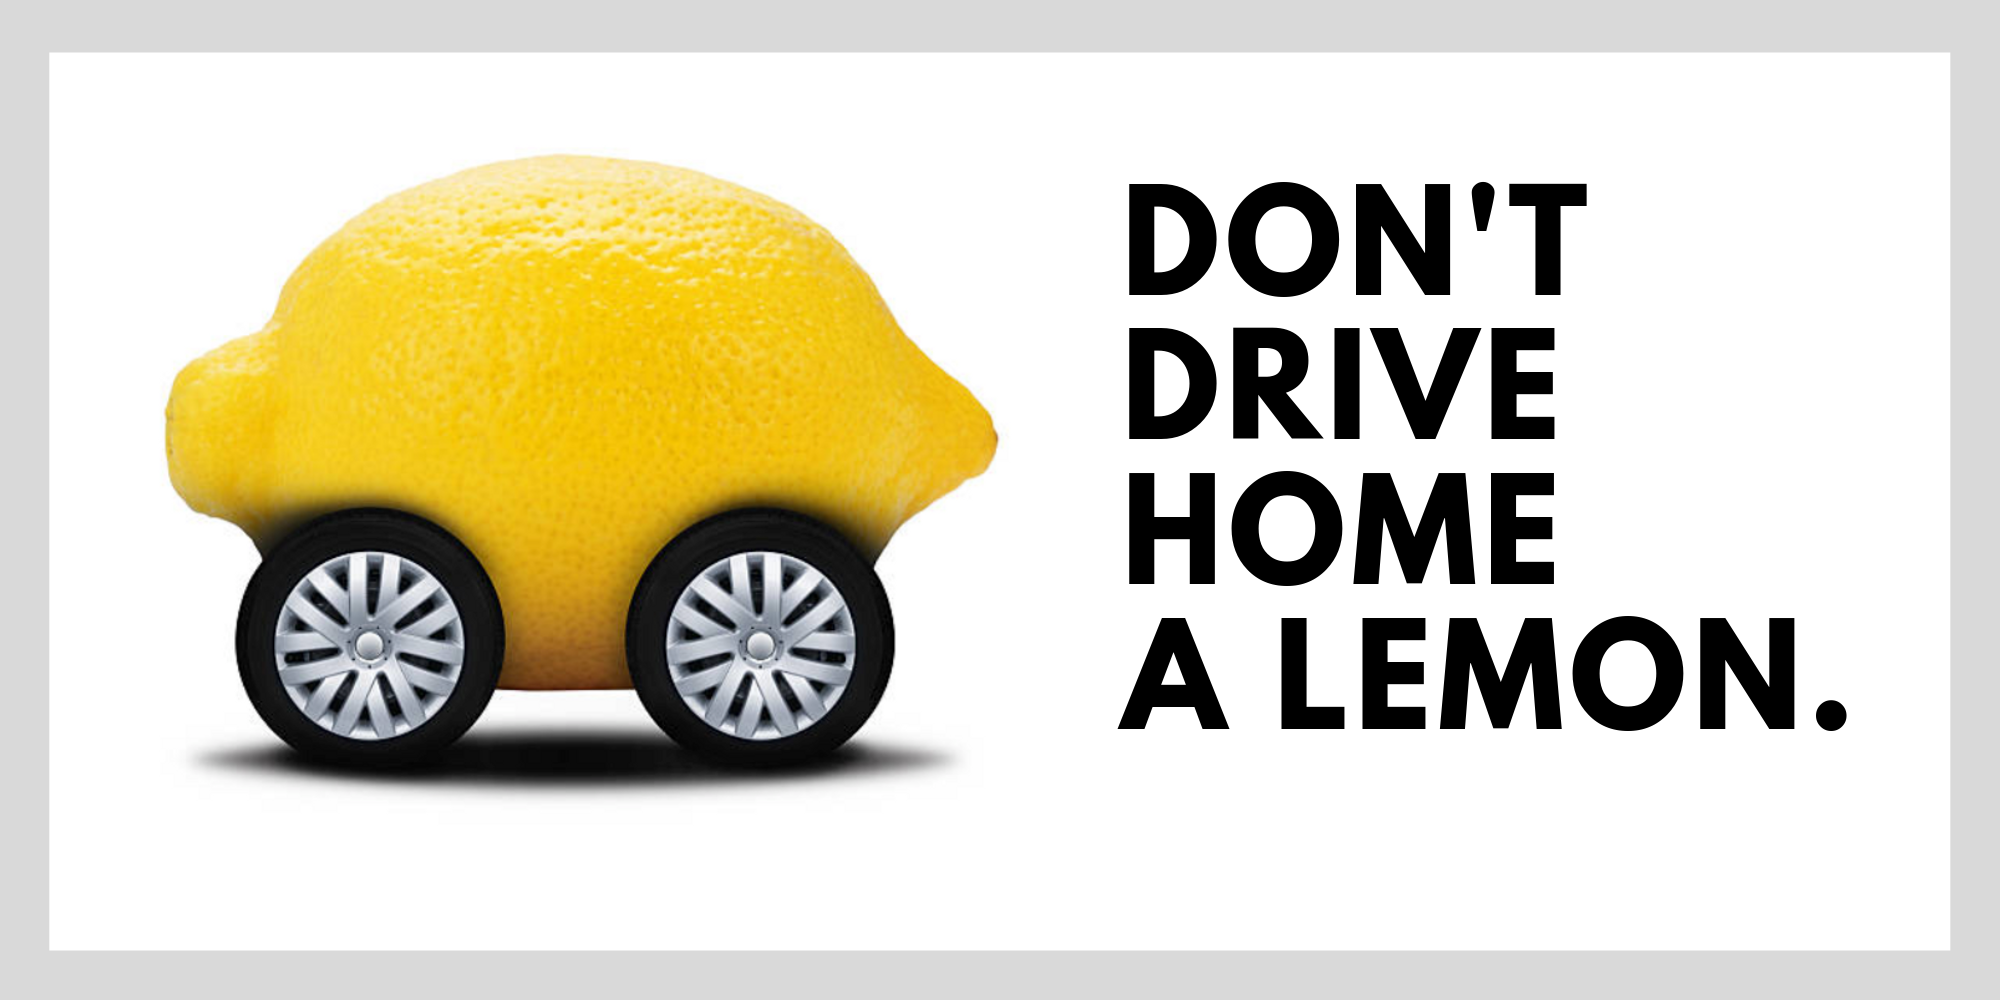 Get help buying your next car. Don't drive home a lemon car.